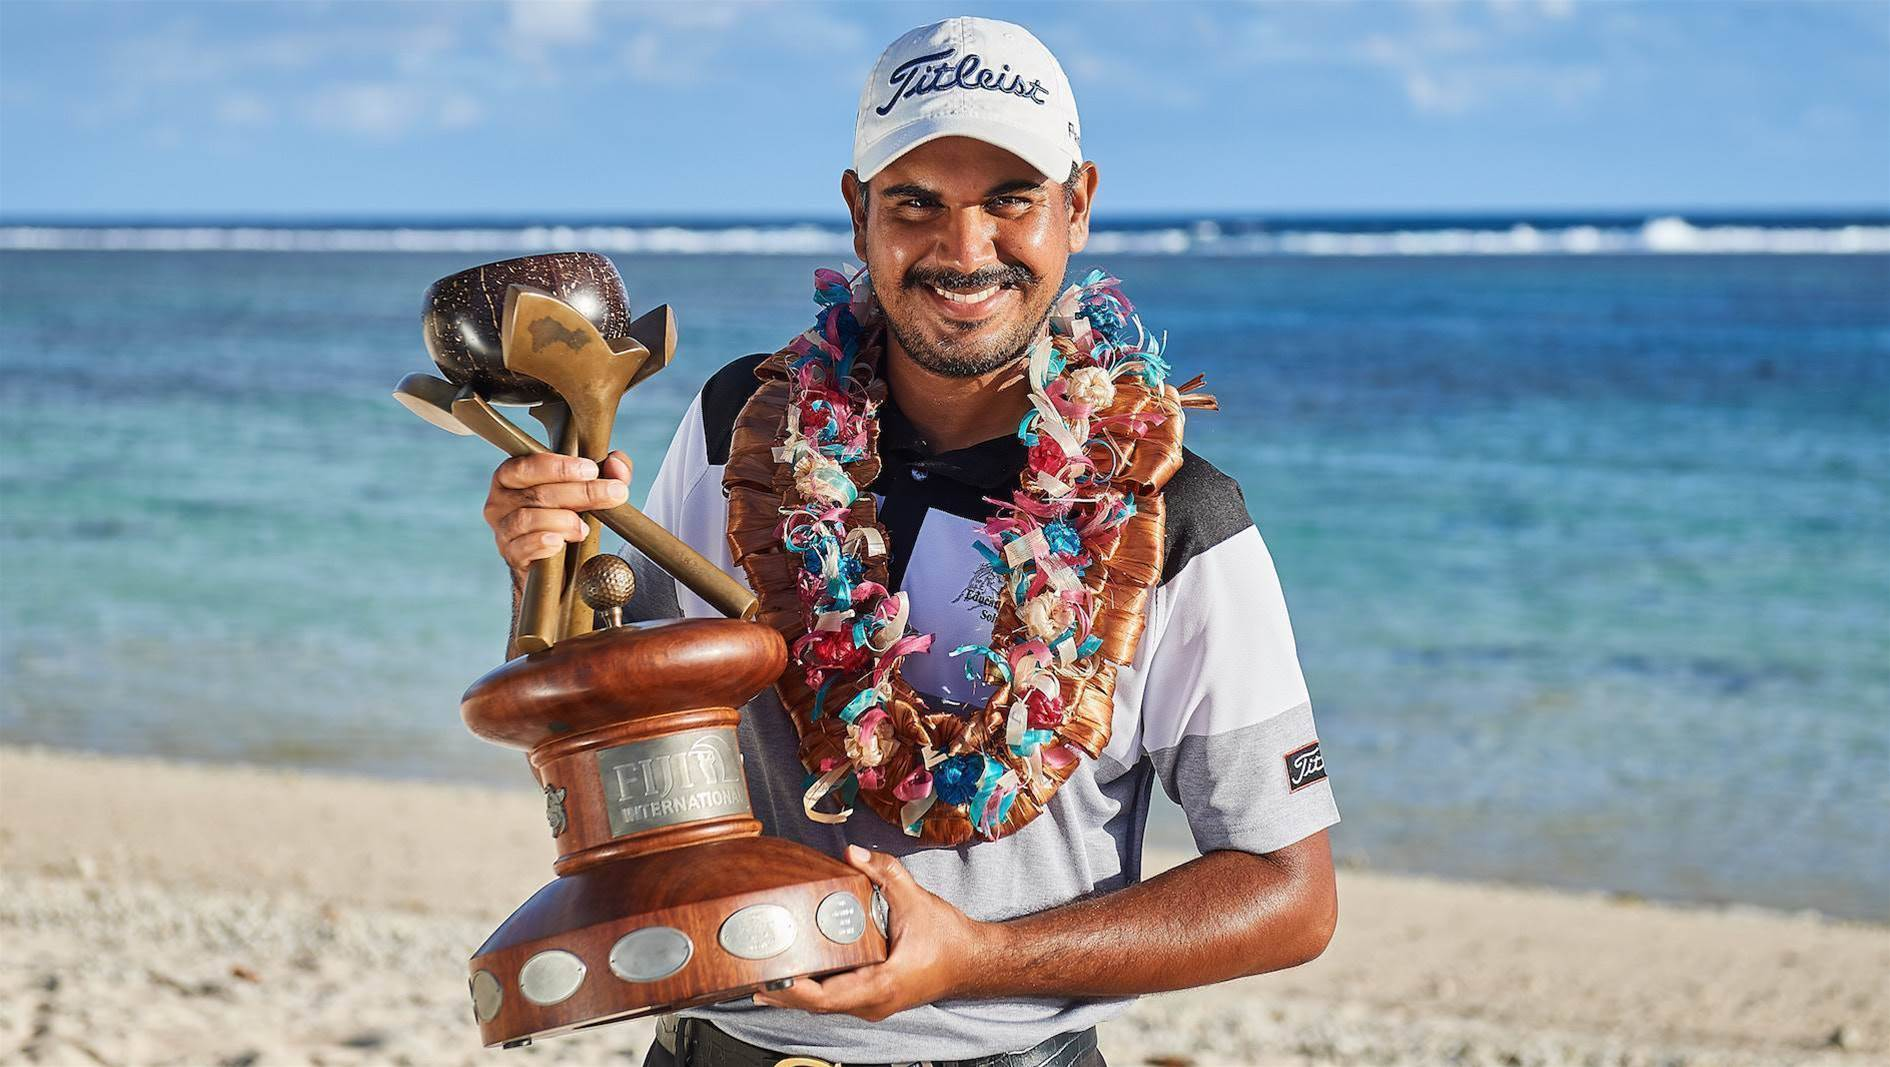 Gaganjeet Bhullar wins the 2018 Fiji International